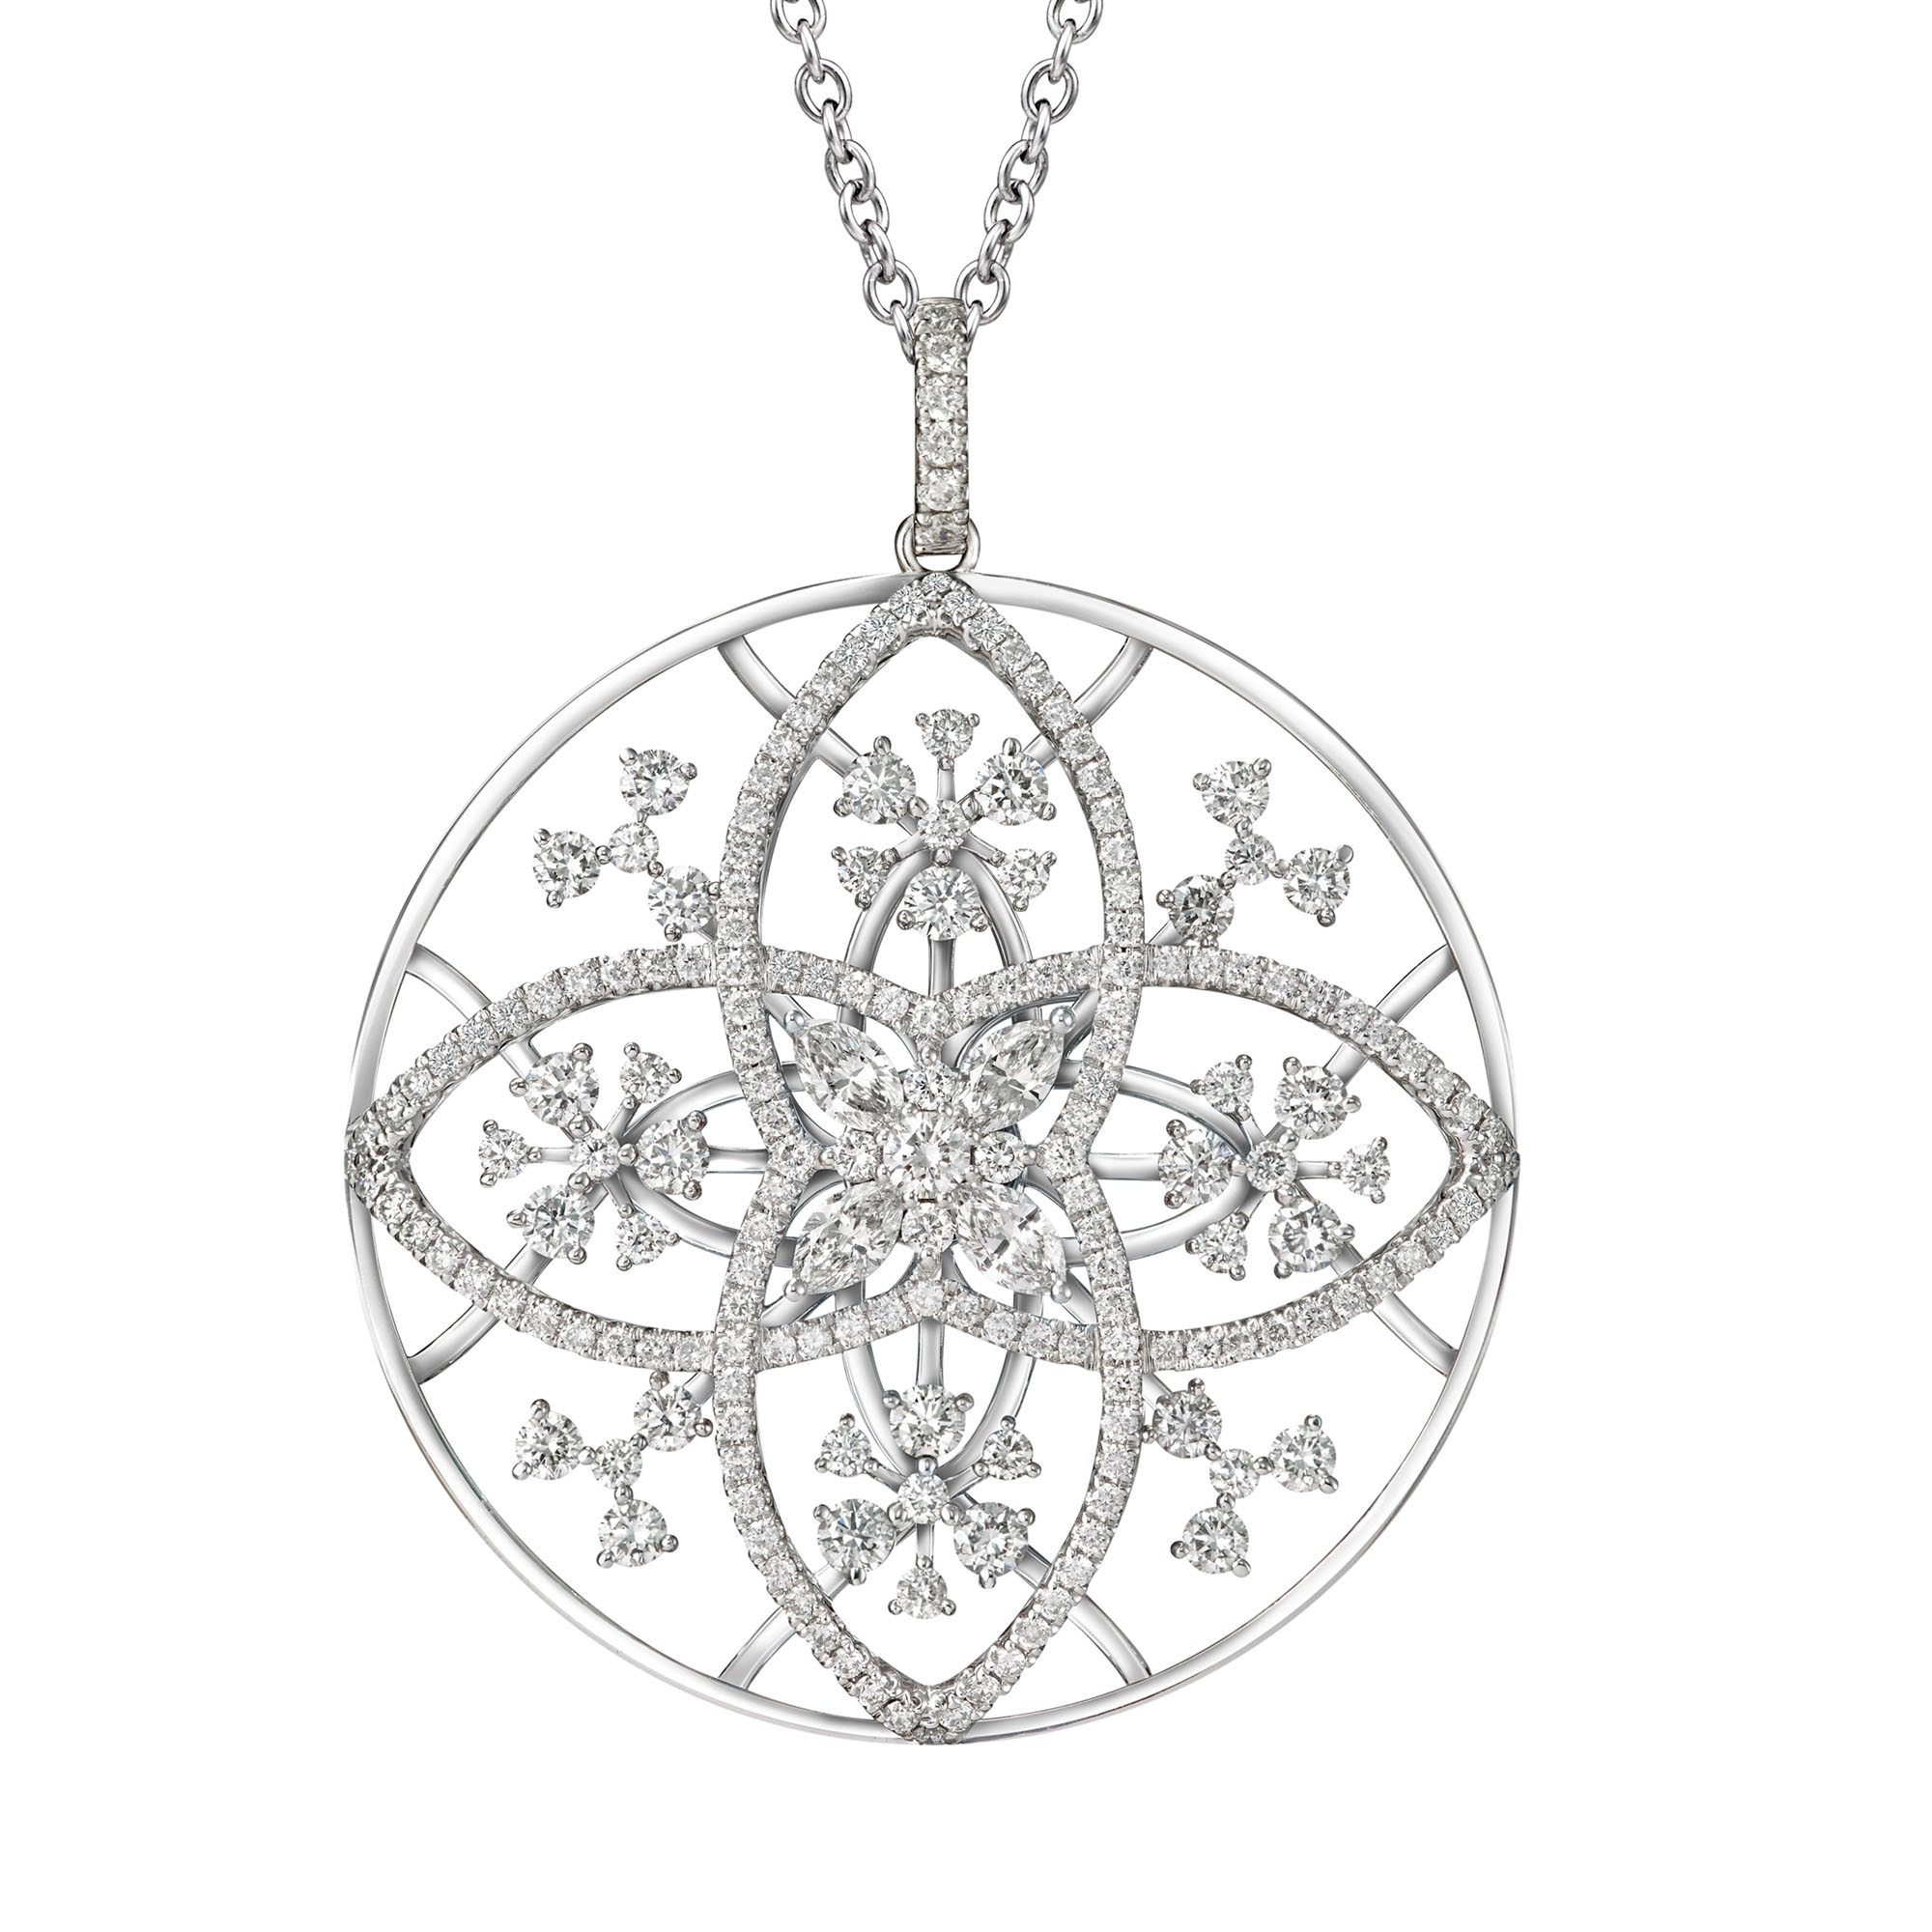 The Pinwheels Diamond Necklace